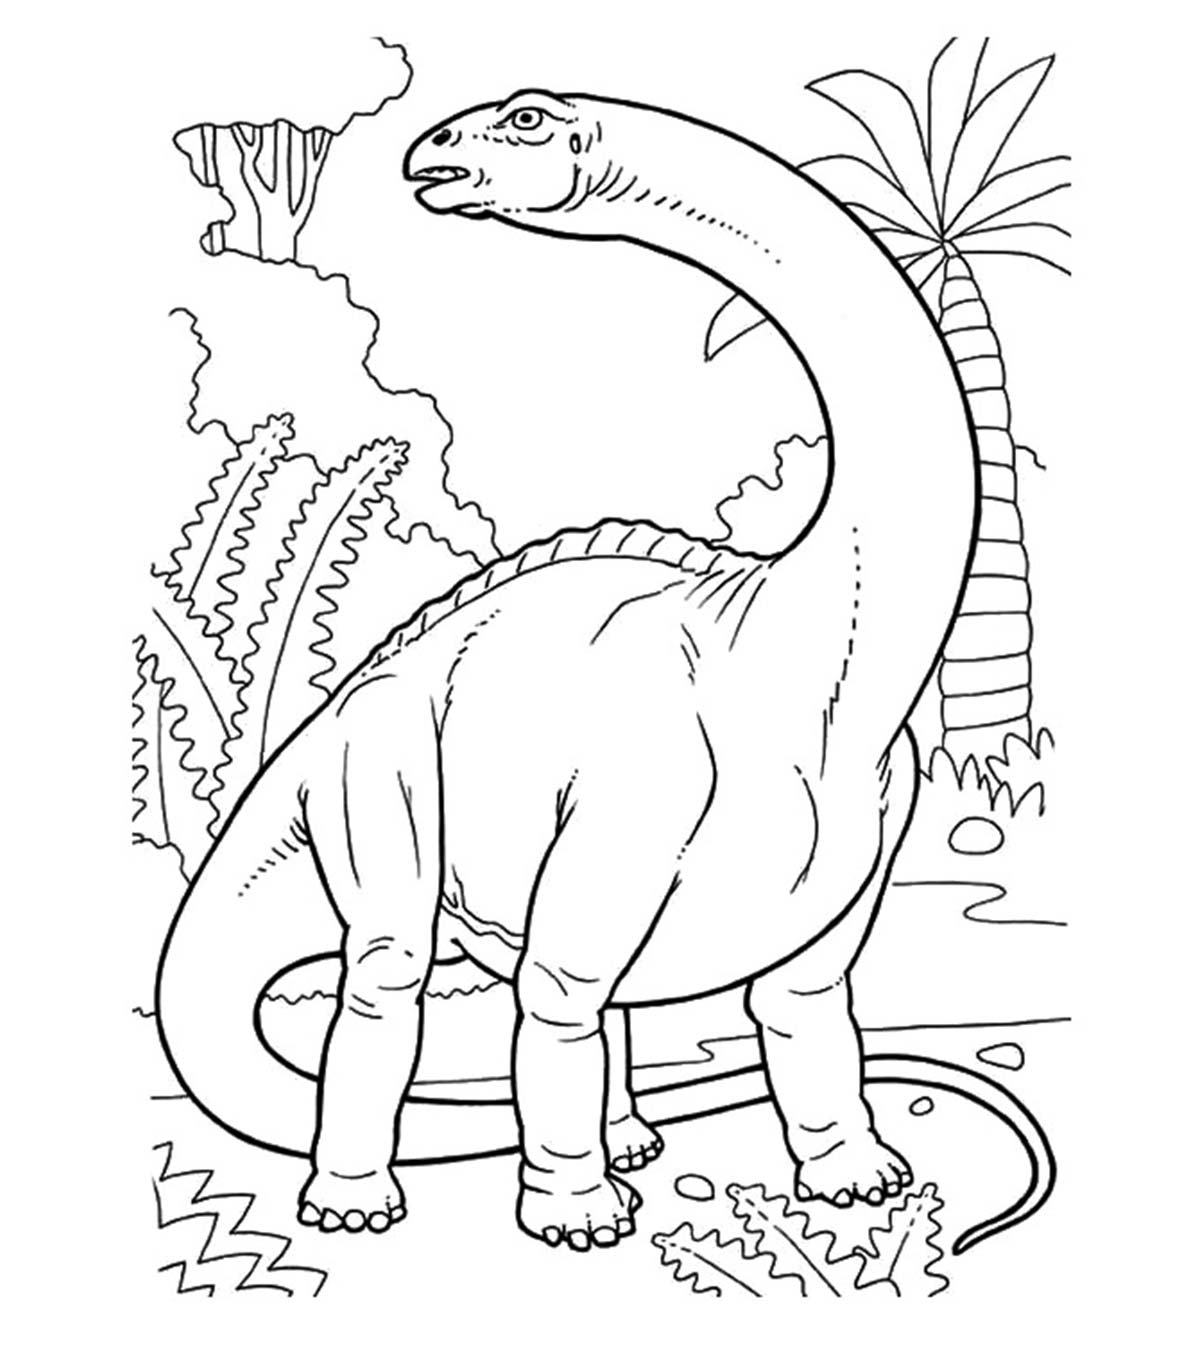 coloring dinosaur free printables coloring pages from the animated tv series dinosaur train free dinosaur coloring printables